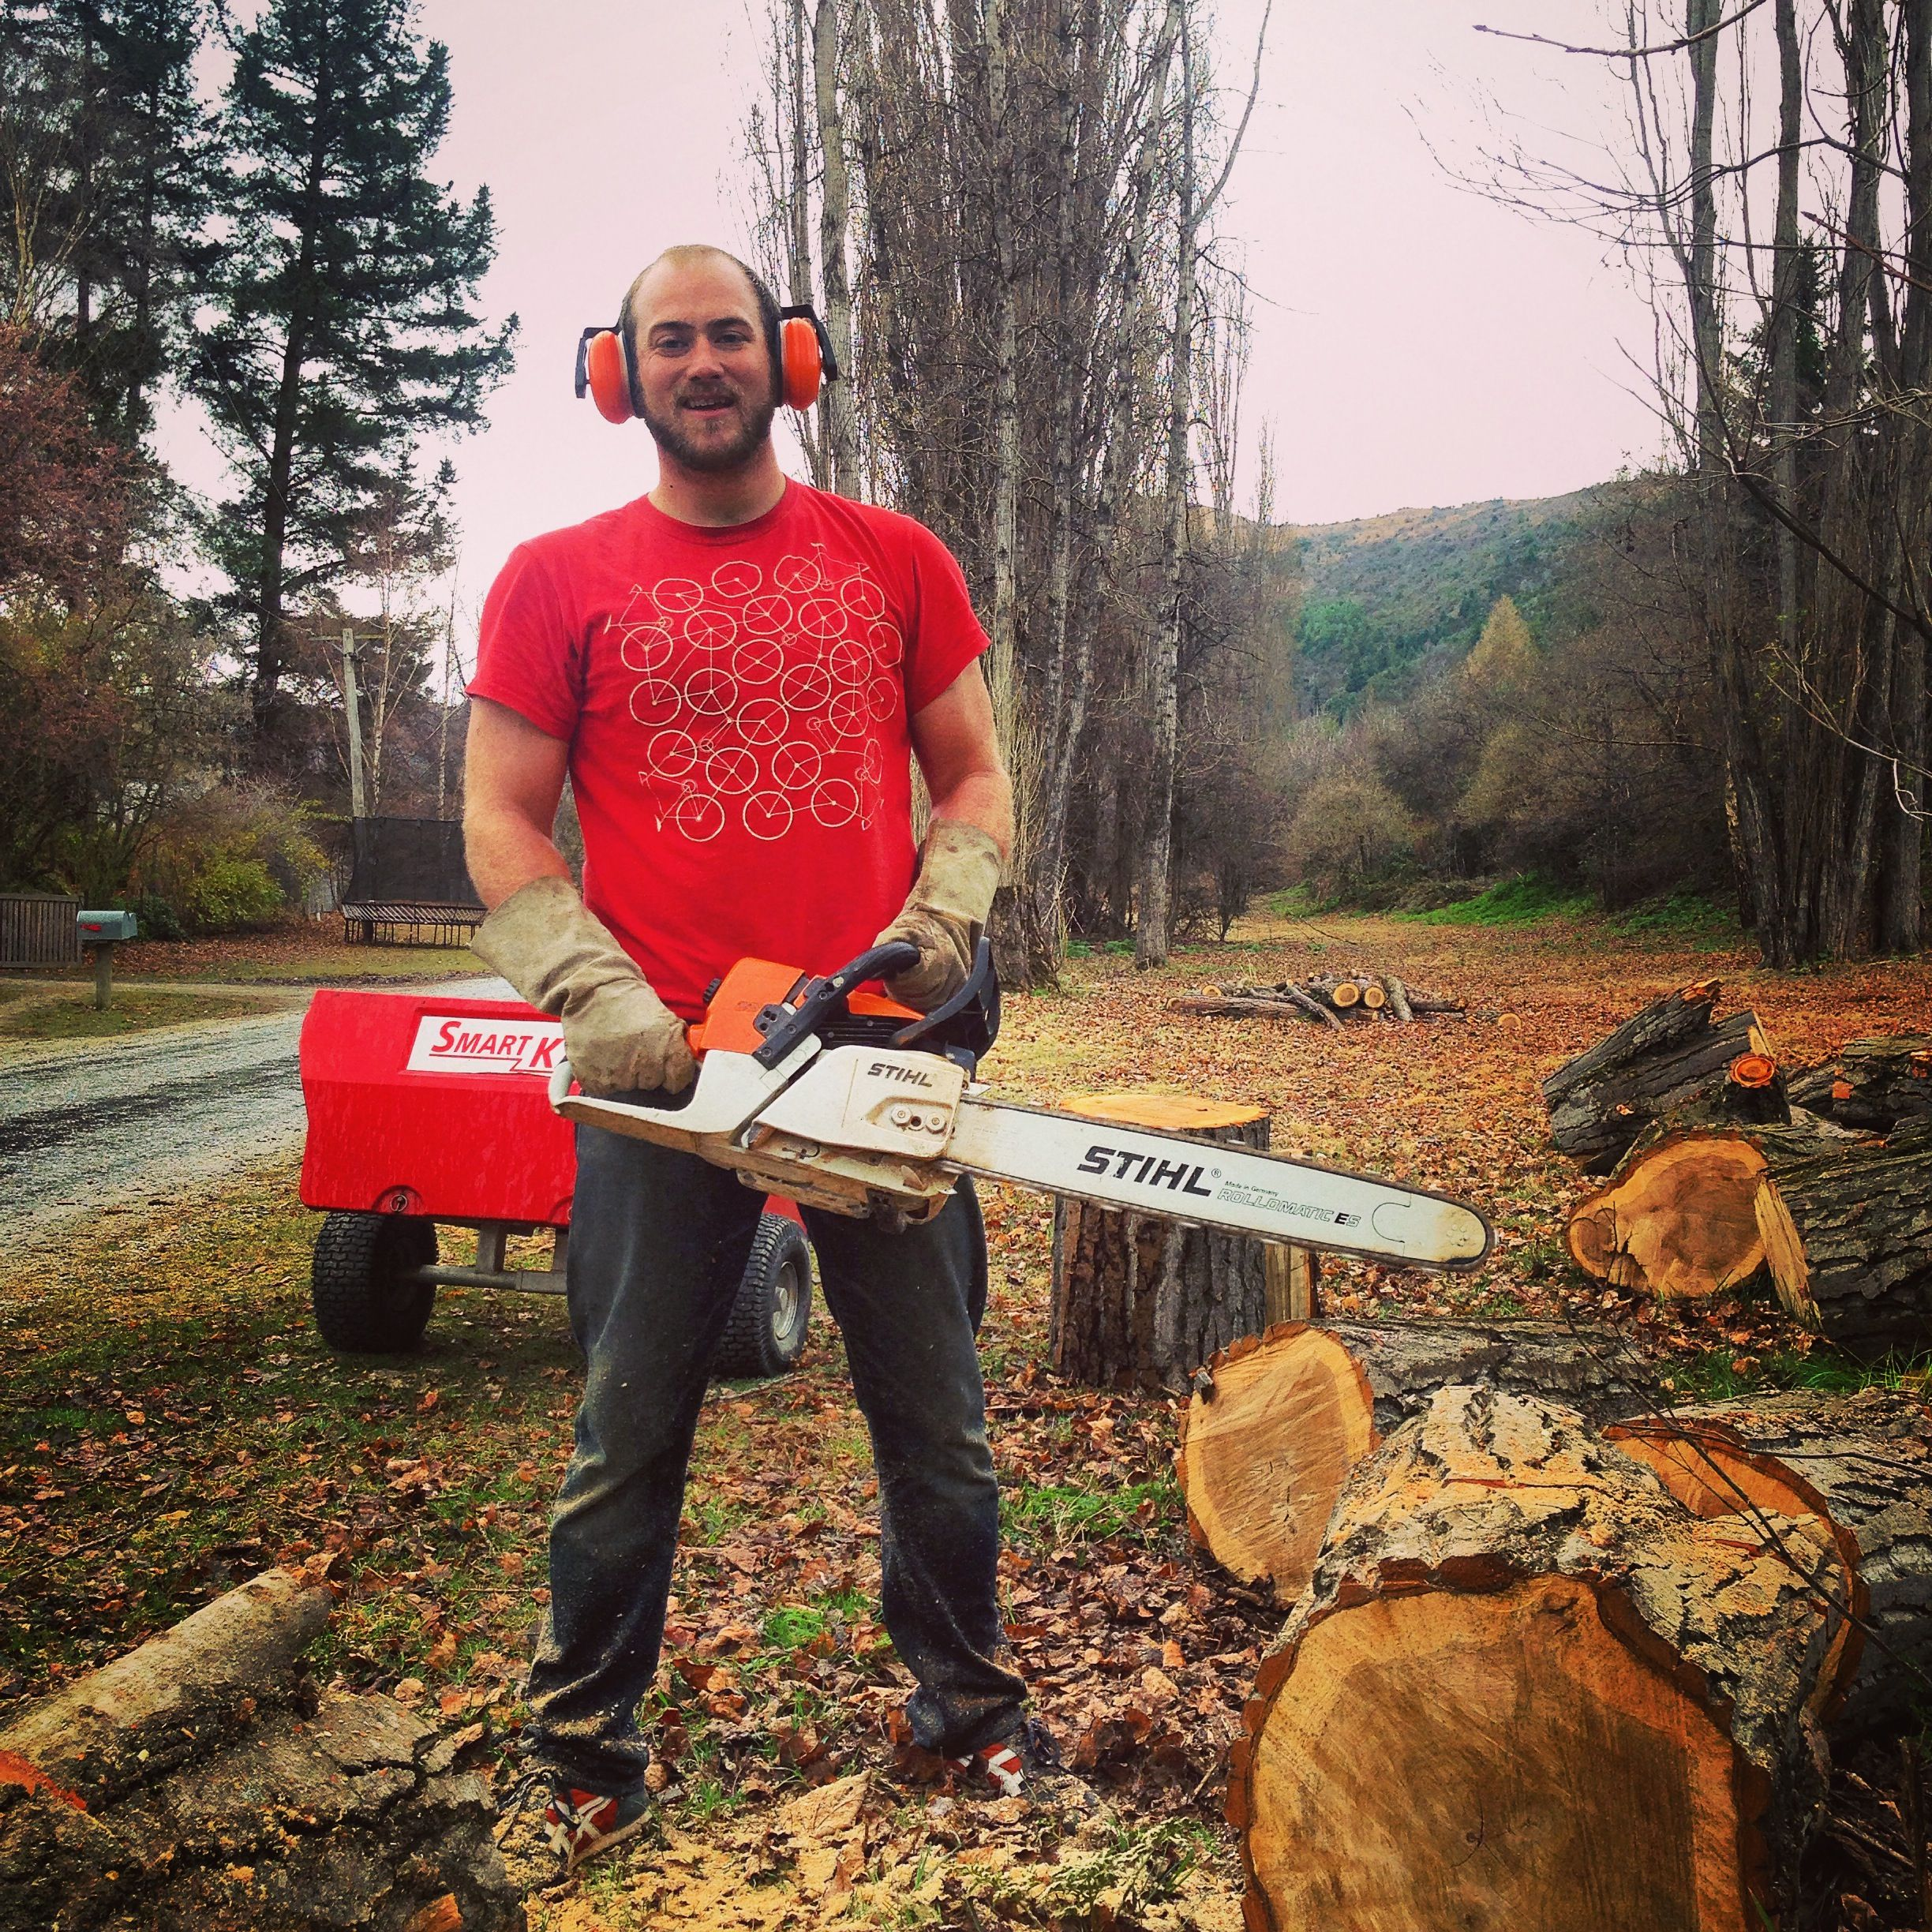 The BIG boy chainsaw!